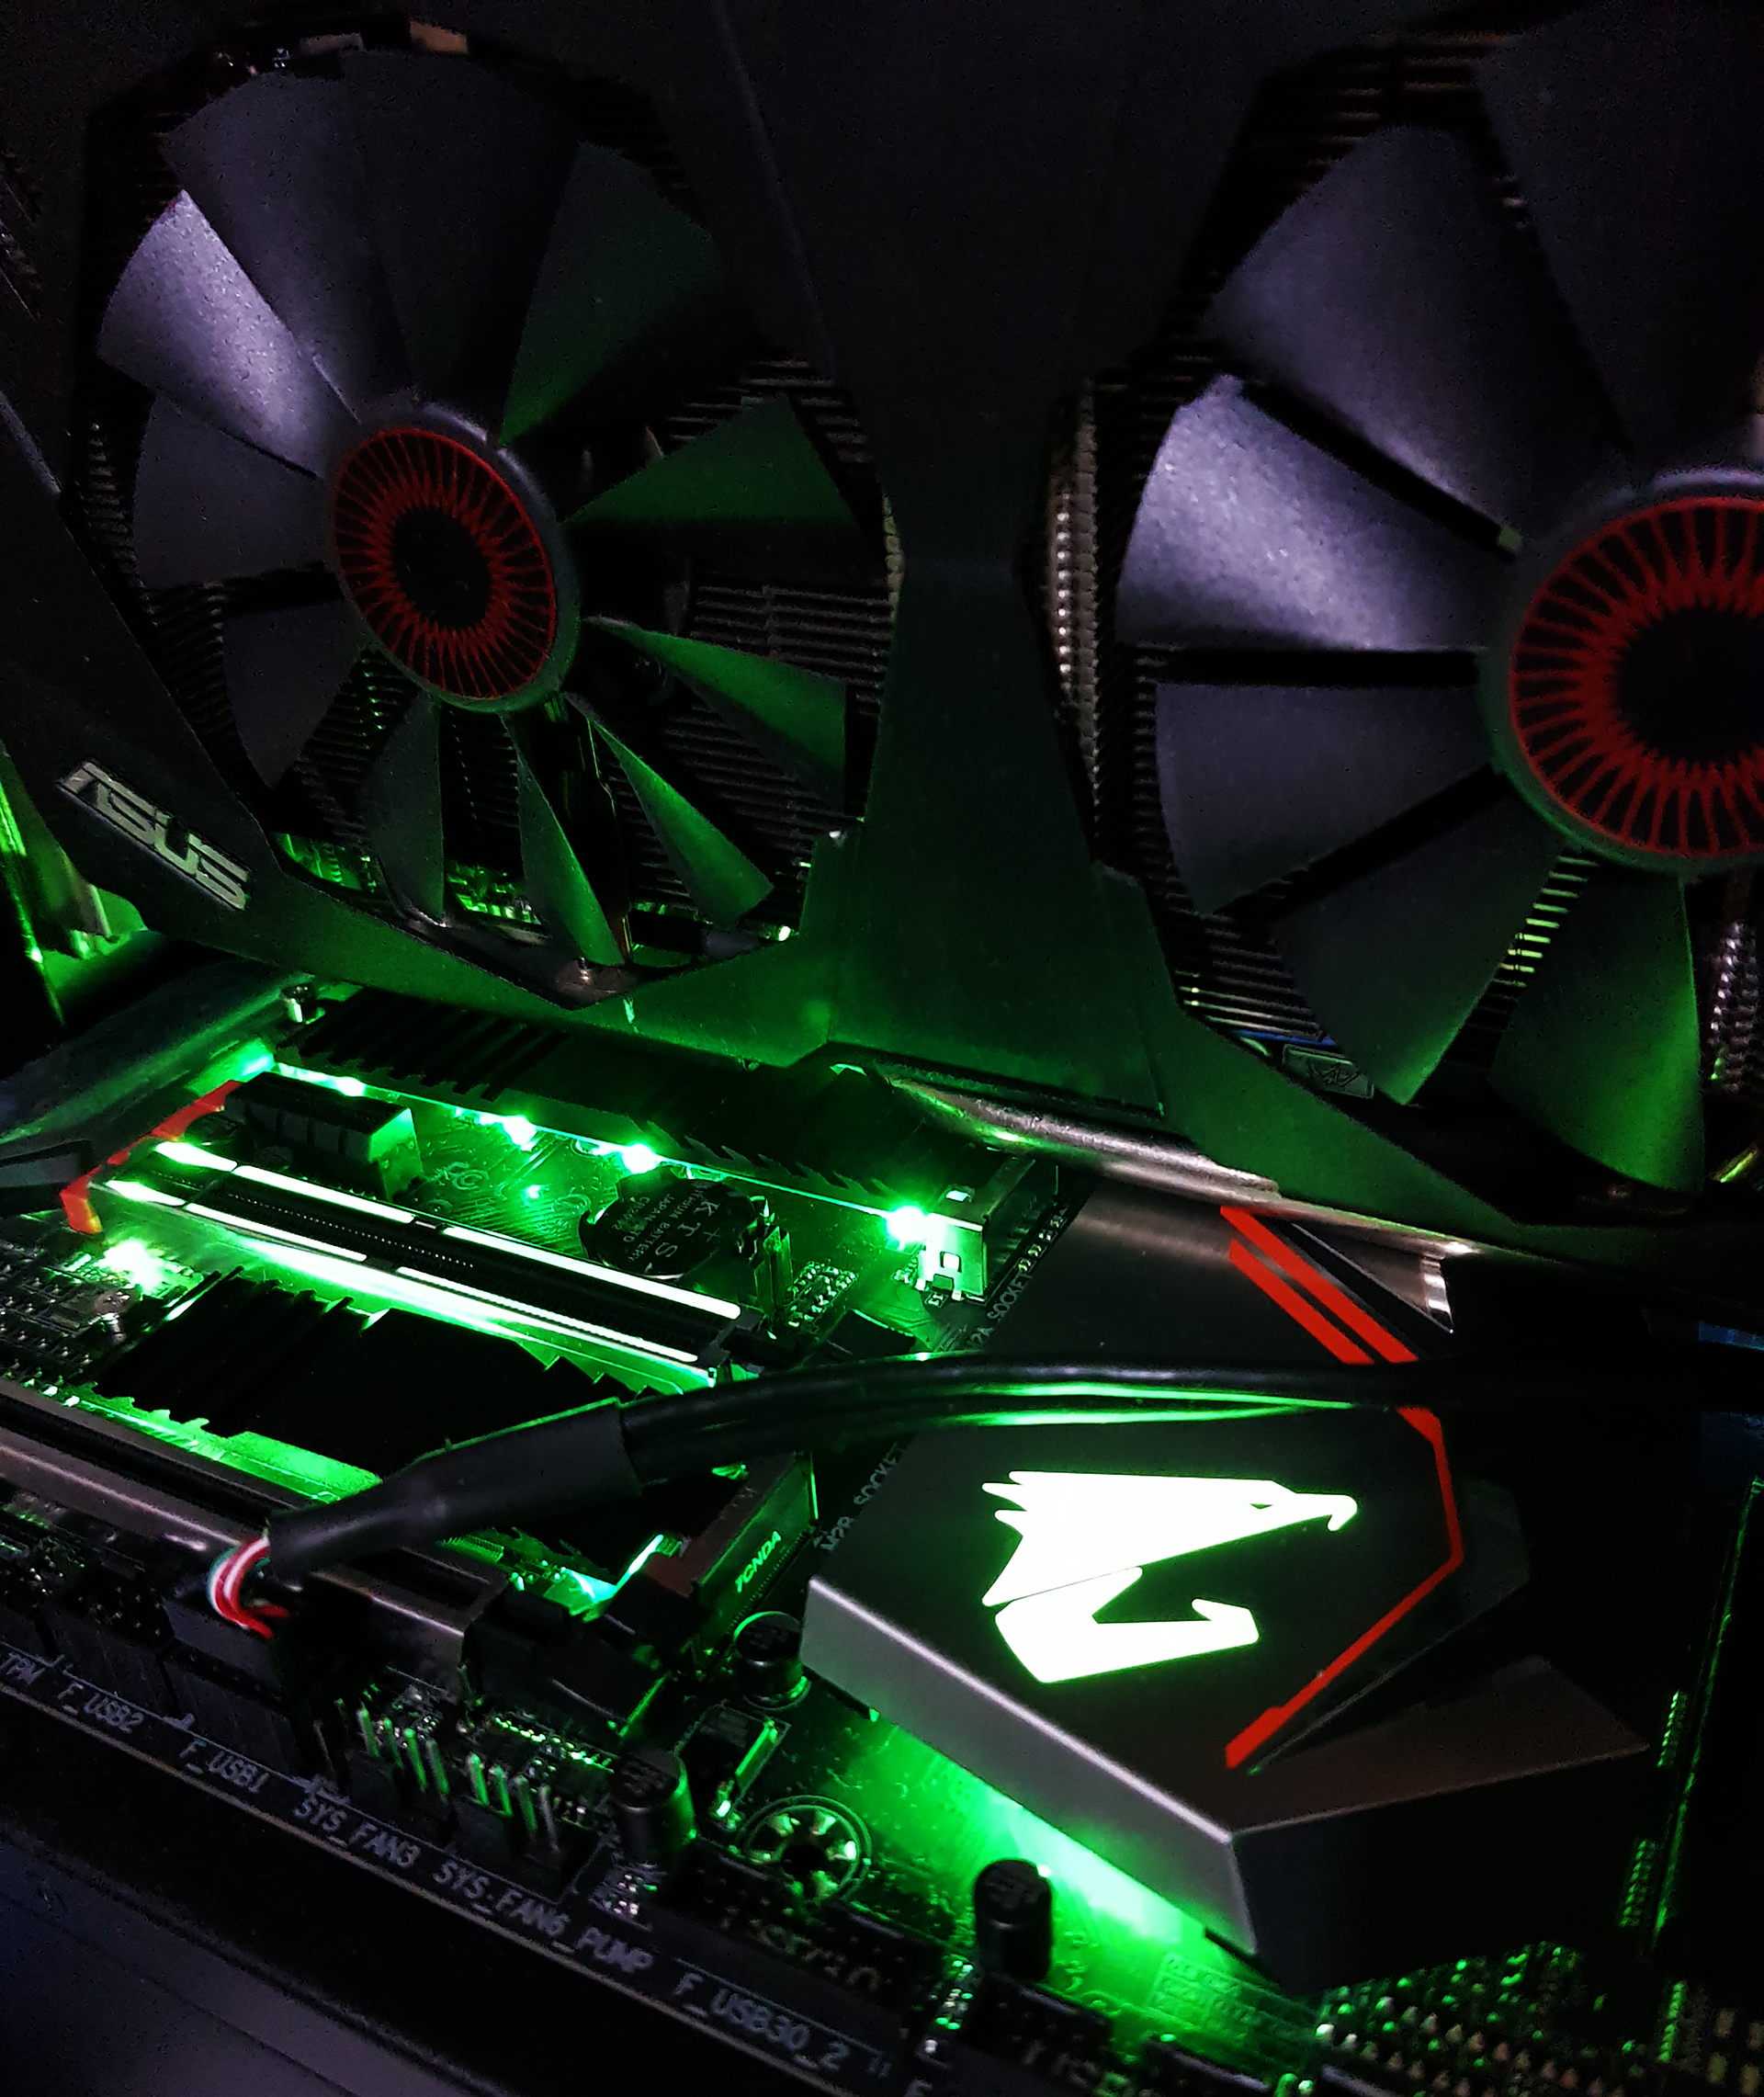 Visual Inspection - The GIGABYTE X470 Gaming 7 Wi-Fi